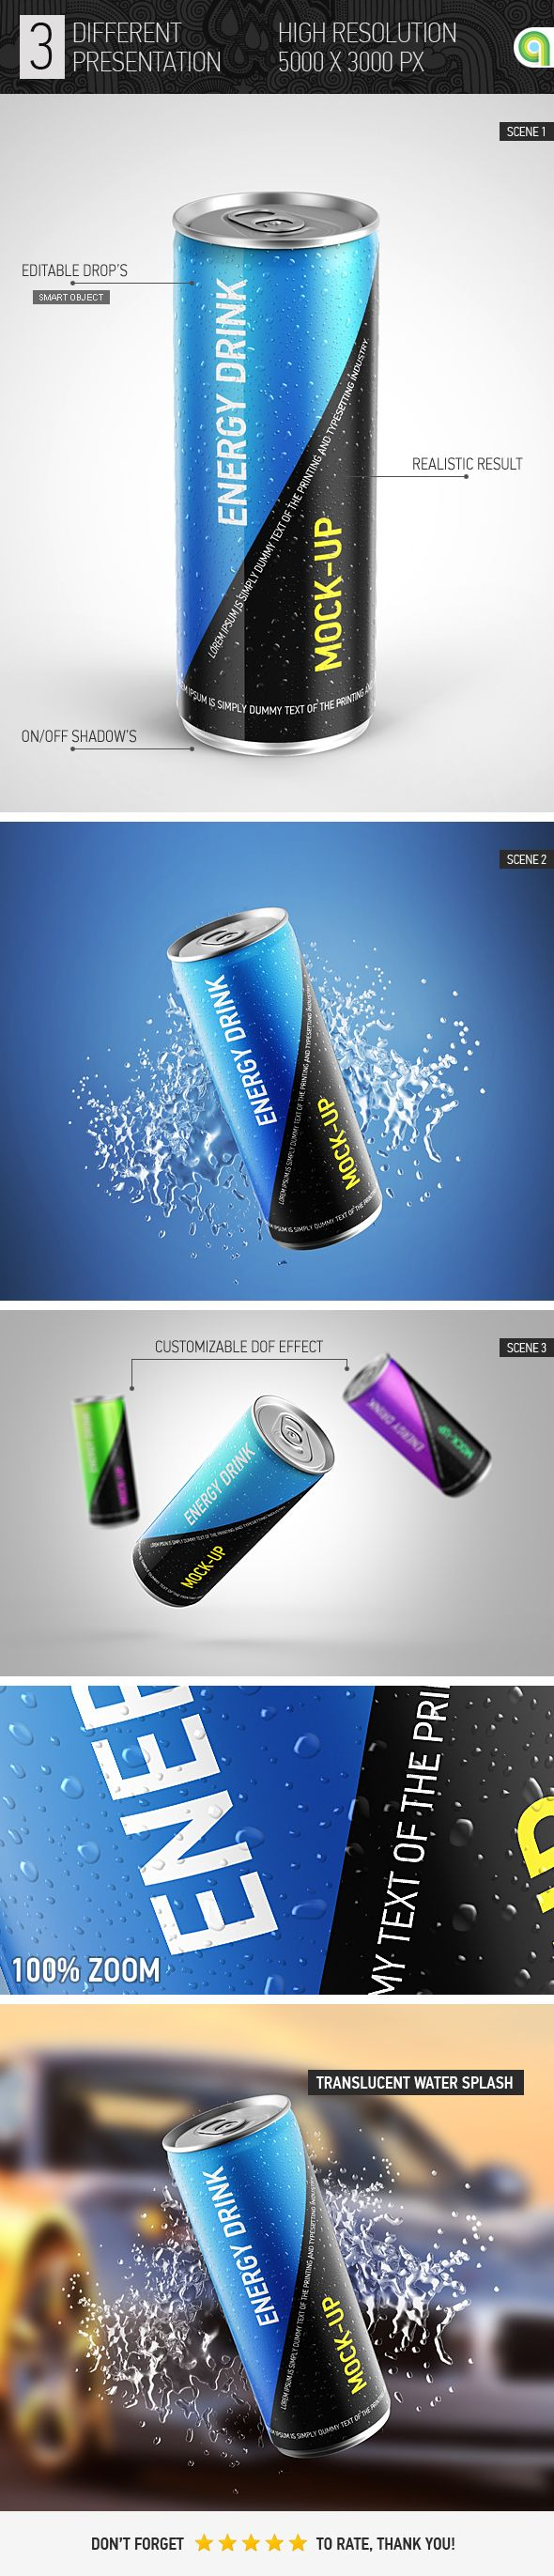 Energy Drink Can Mockup. 250ml, ads, aluminium, beer, beverage, can, can mock-up, can mockup, cola, cold, drink, drop, droplet, drops, energy drink, freeze, fresh, frozen, ice, label, logo mockup, mock-up, packaging, soda, soft drink, splash, steel, water #mockup